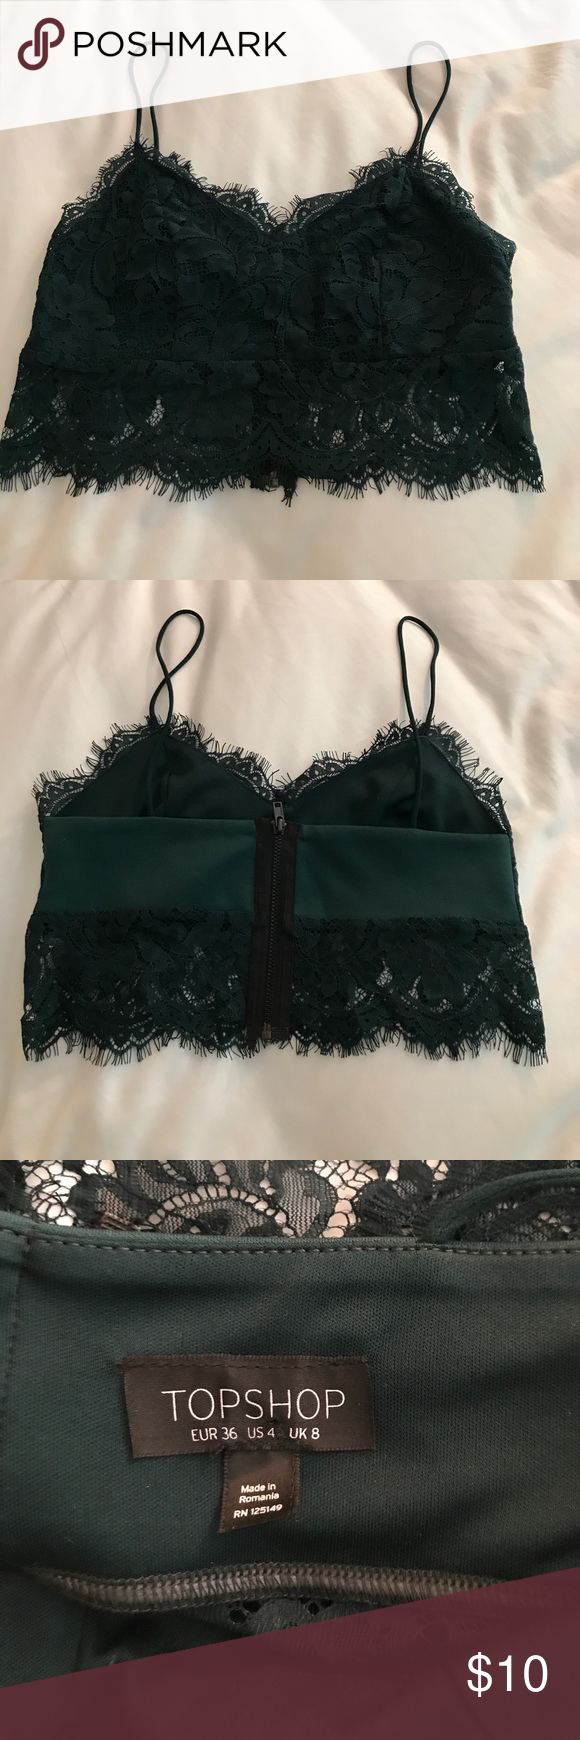 d272c79301ccd7 Topshop Forest Green Lace Bralette Forest green bralette featuring a lace  design with a rear exposed zipper. Topshop Tops Camisoles